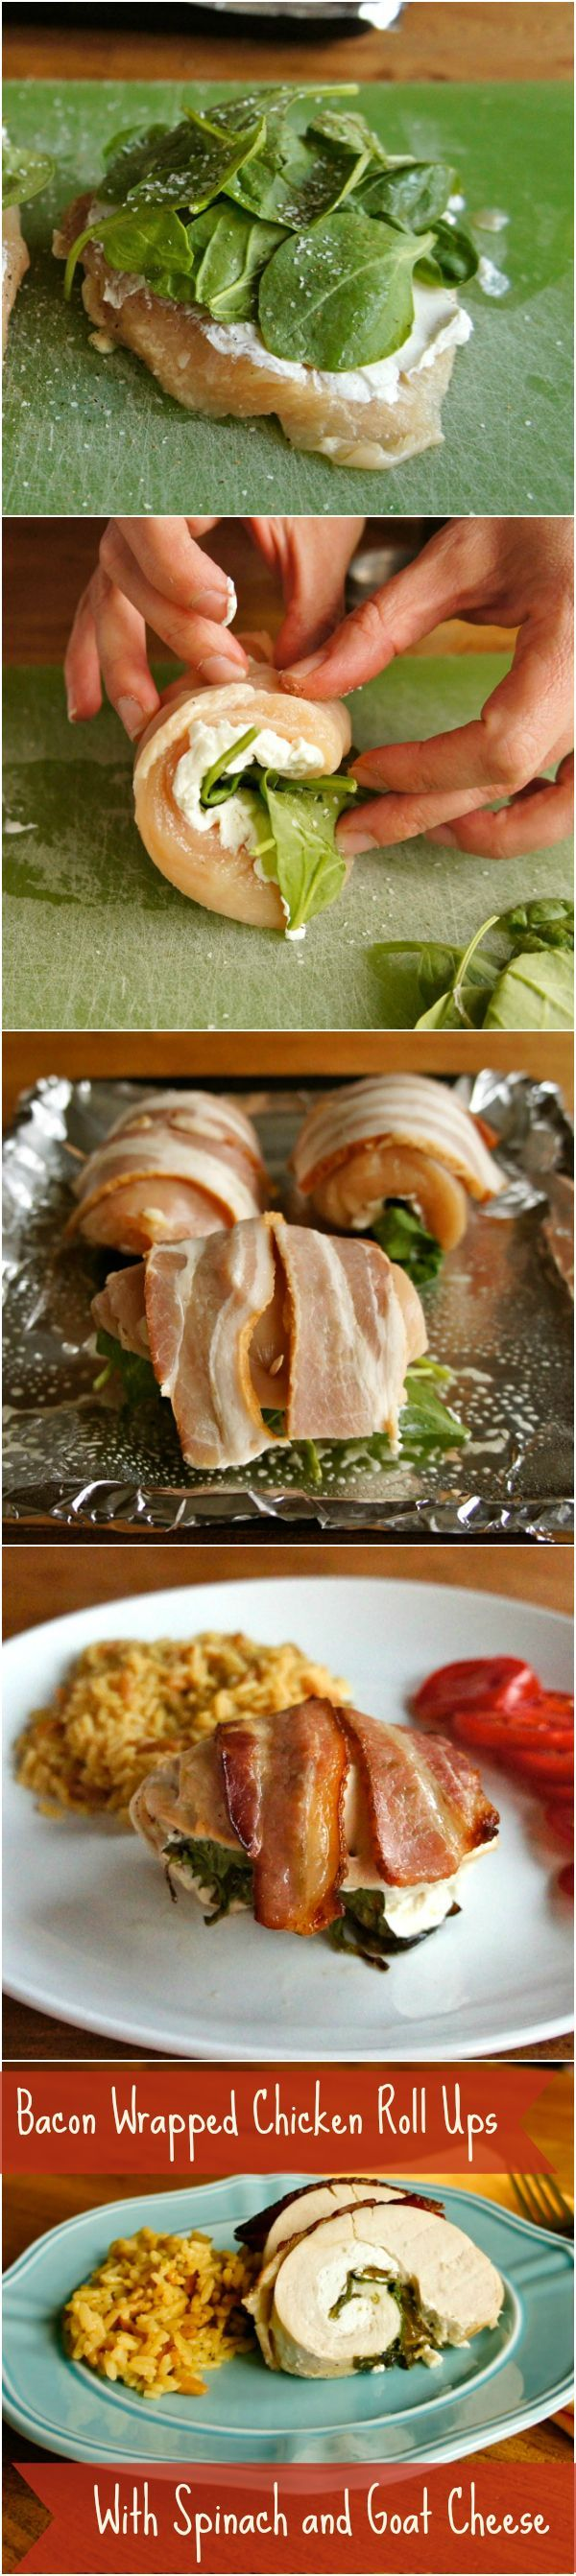 Chicken Roll Ups with Spinach and Goat Cheese: Chicken Roll Ups, Goat ...